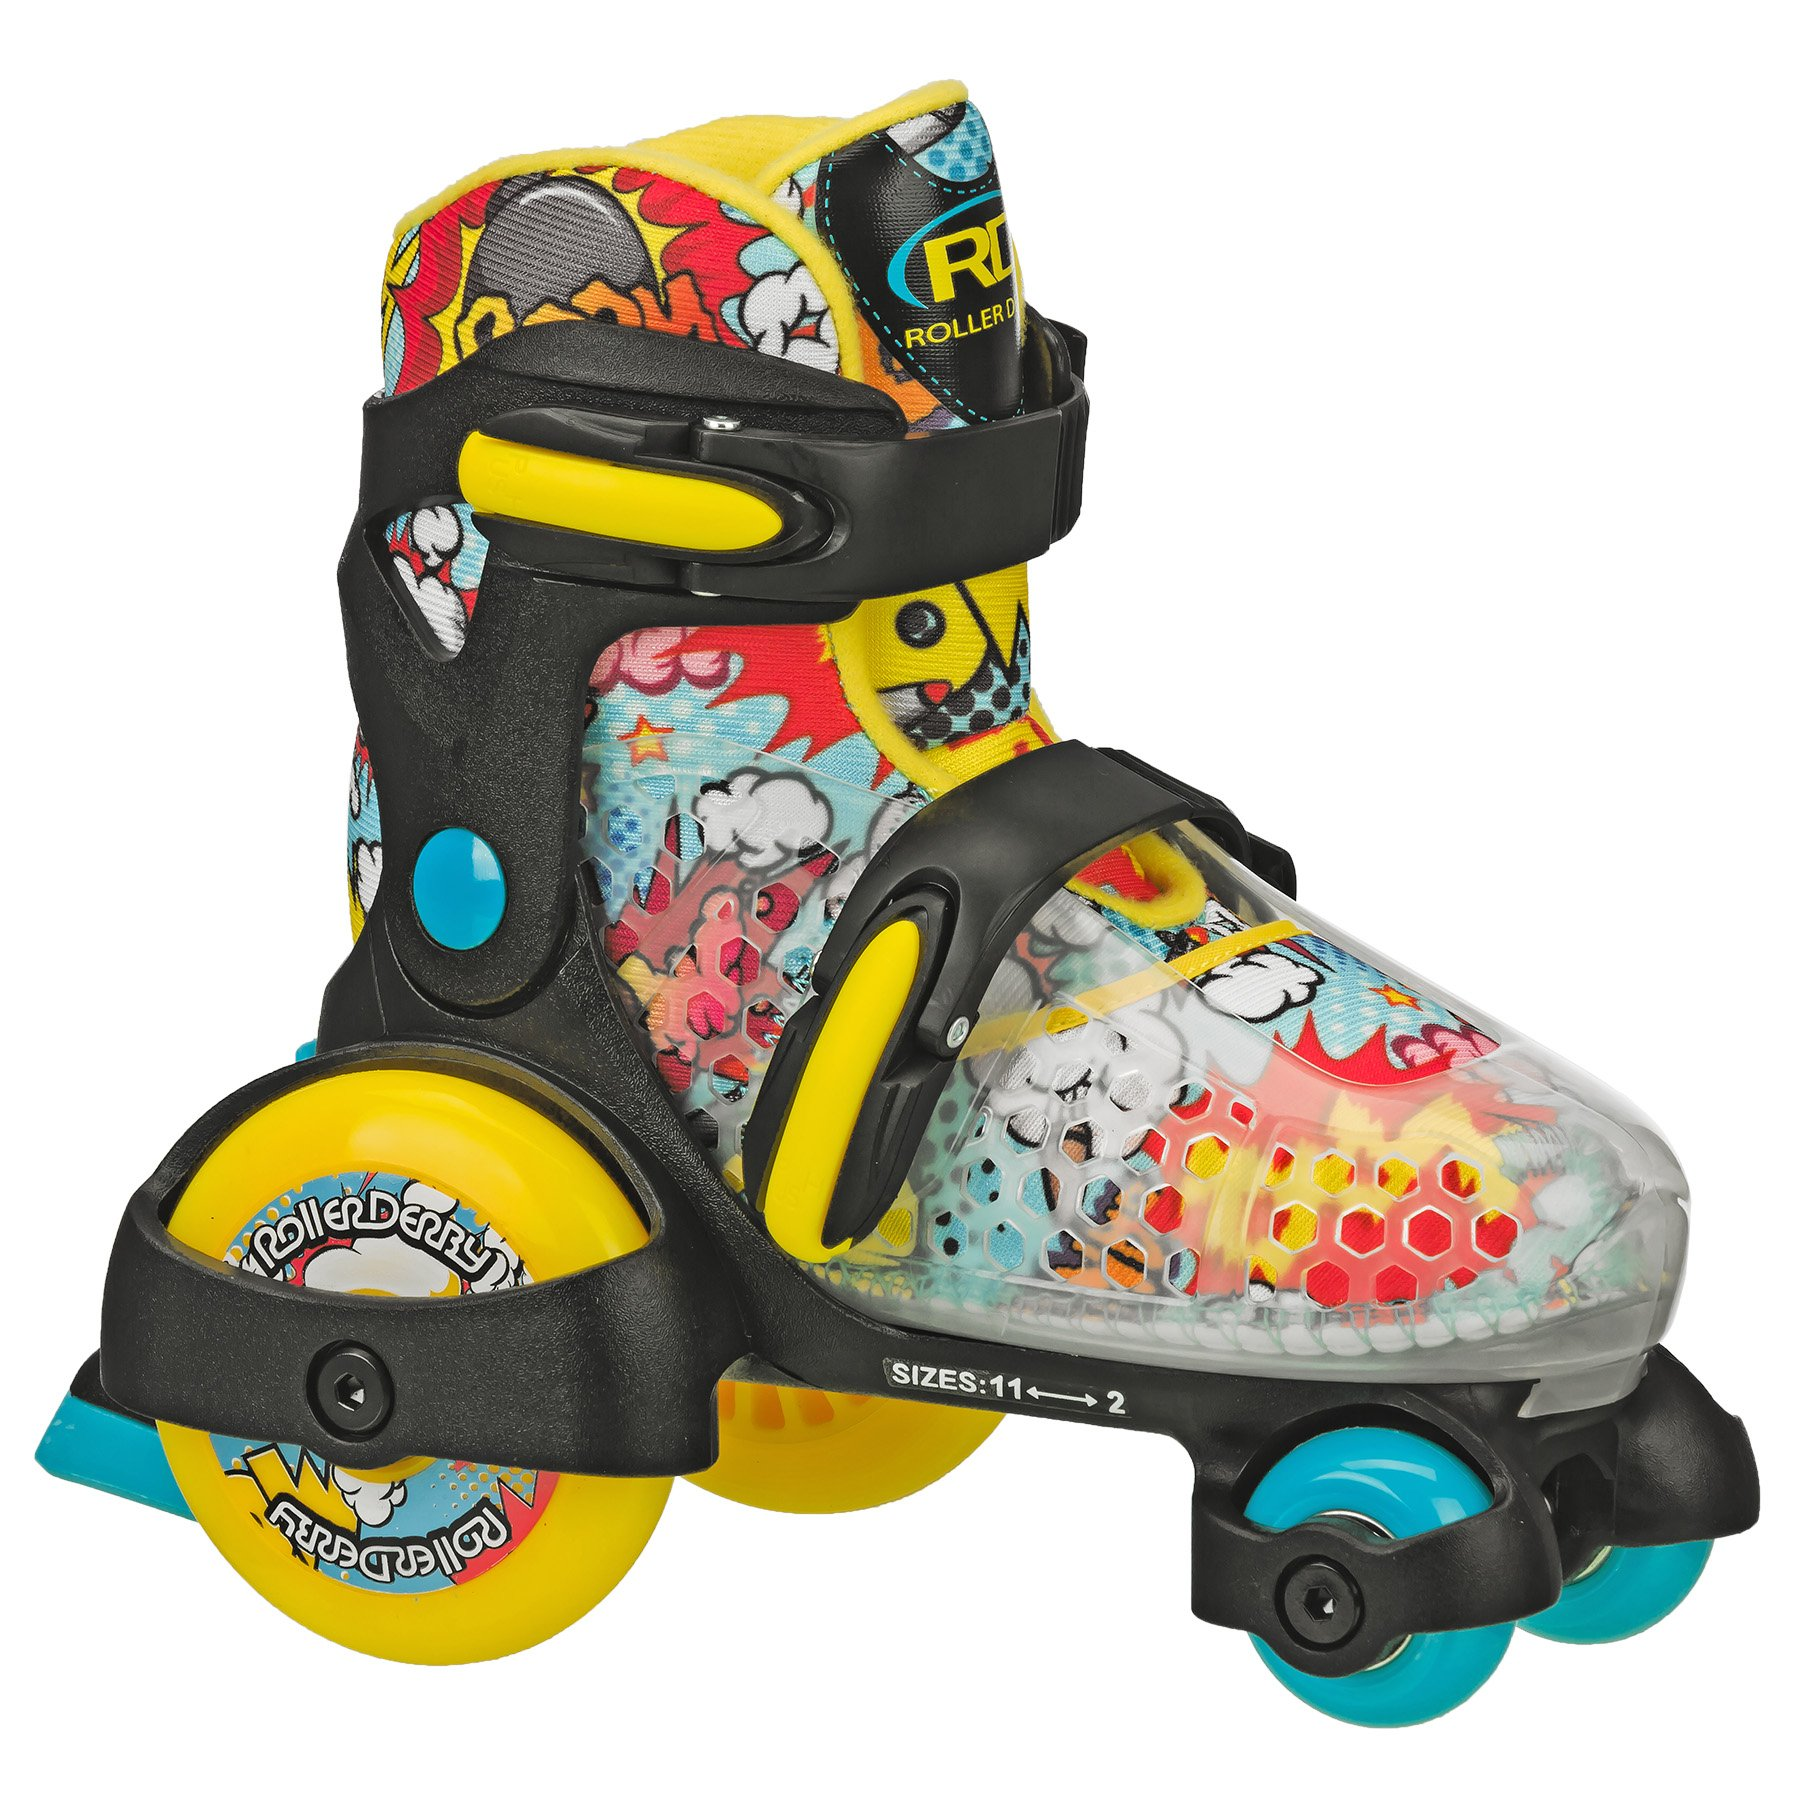 Roller Derby Fun Roll Boy's Jr Adjustable Roller Skate, Small (7-11)